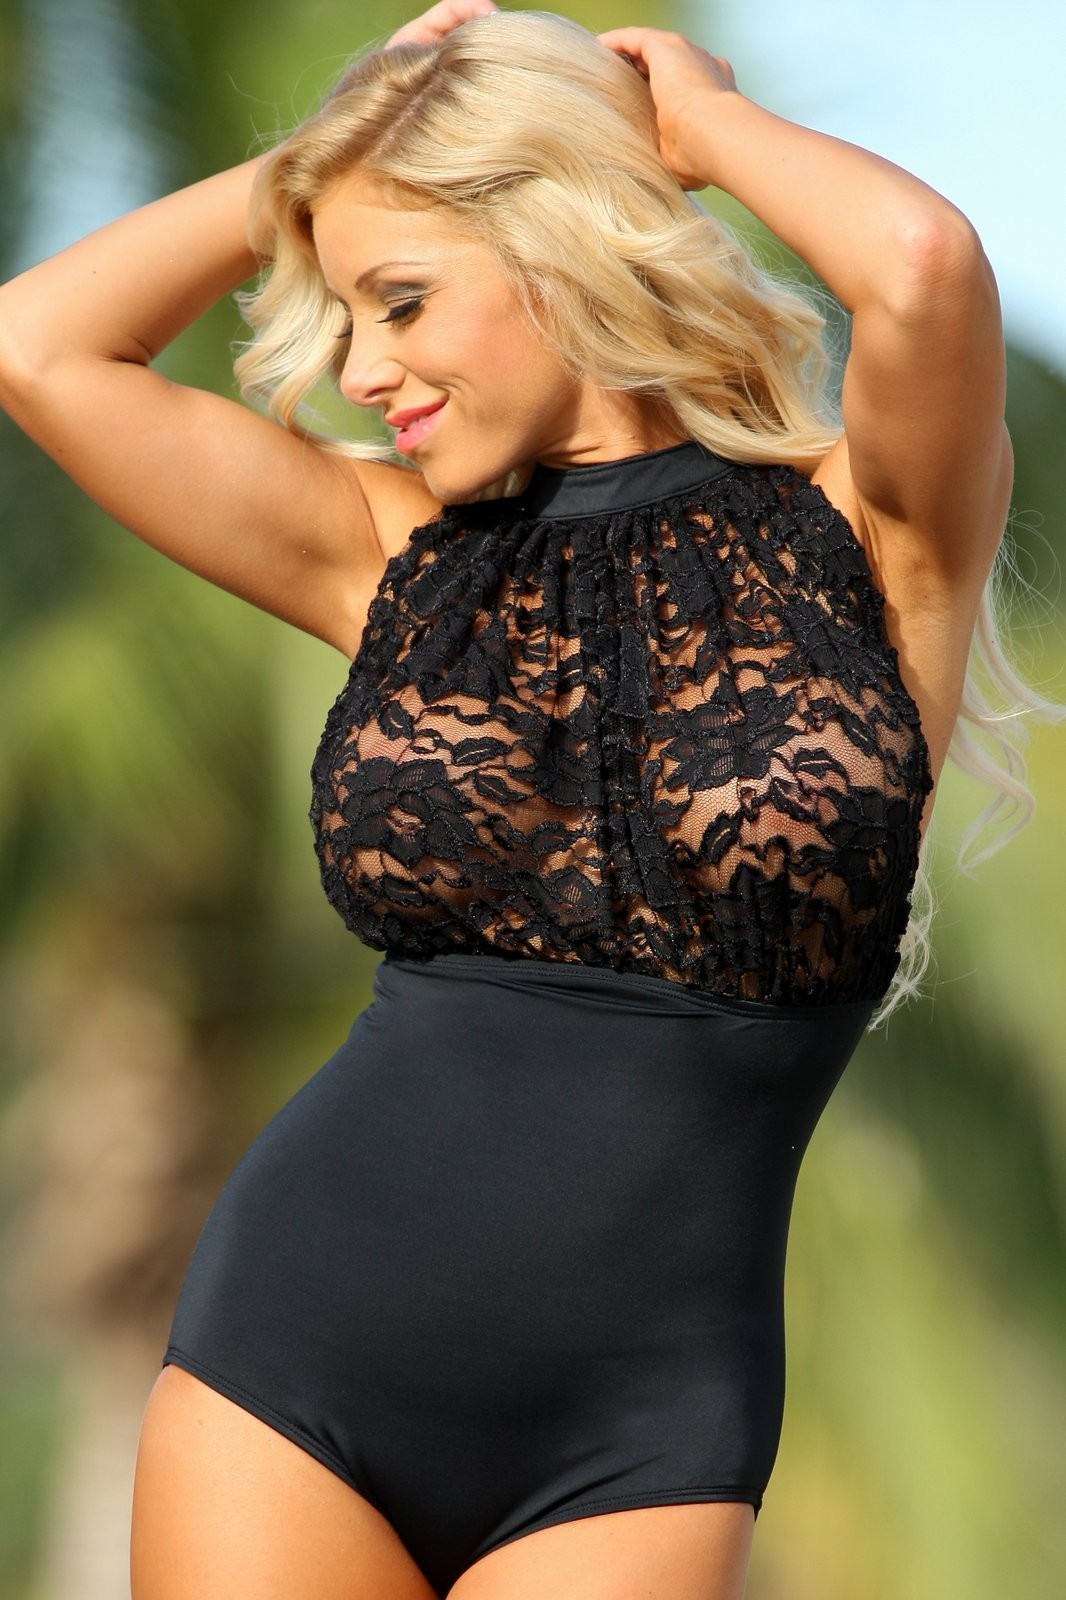 Black-Lace-Sheer-Bust-See-Through-One-Piece-Swimsuit